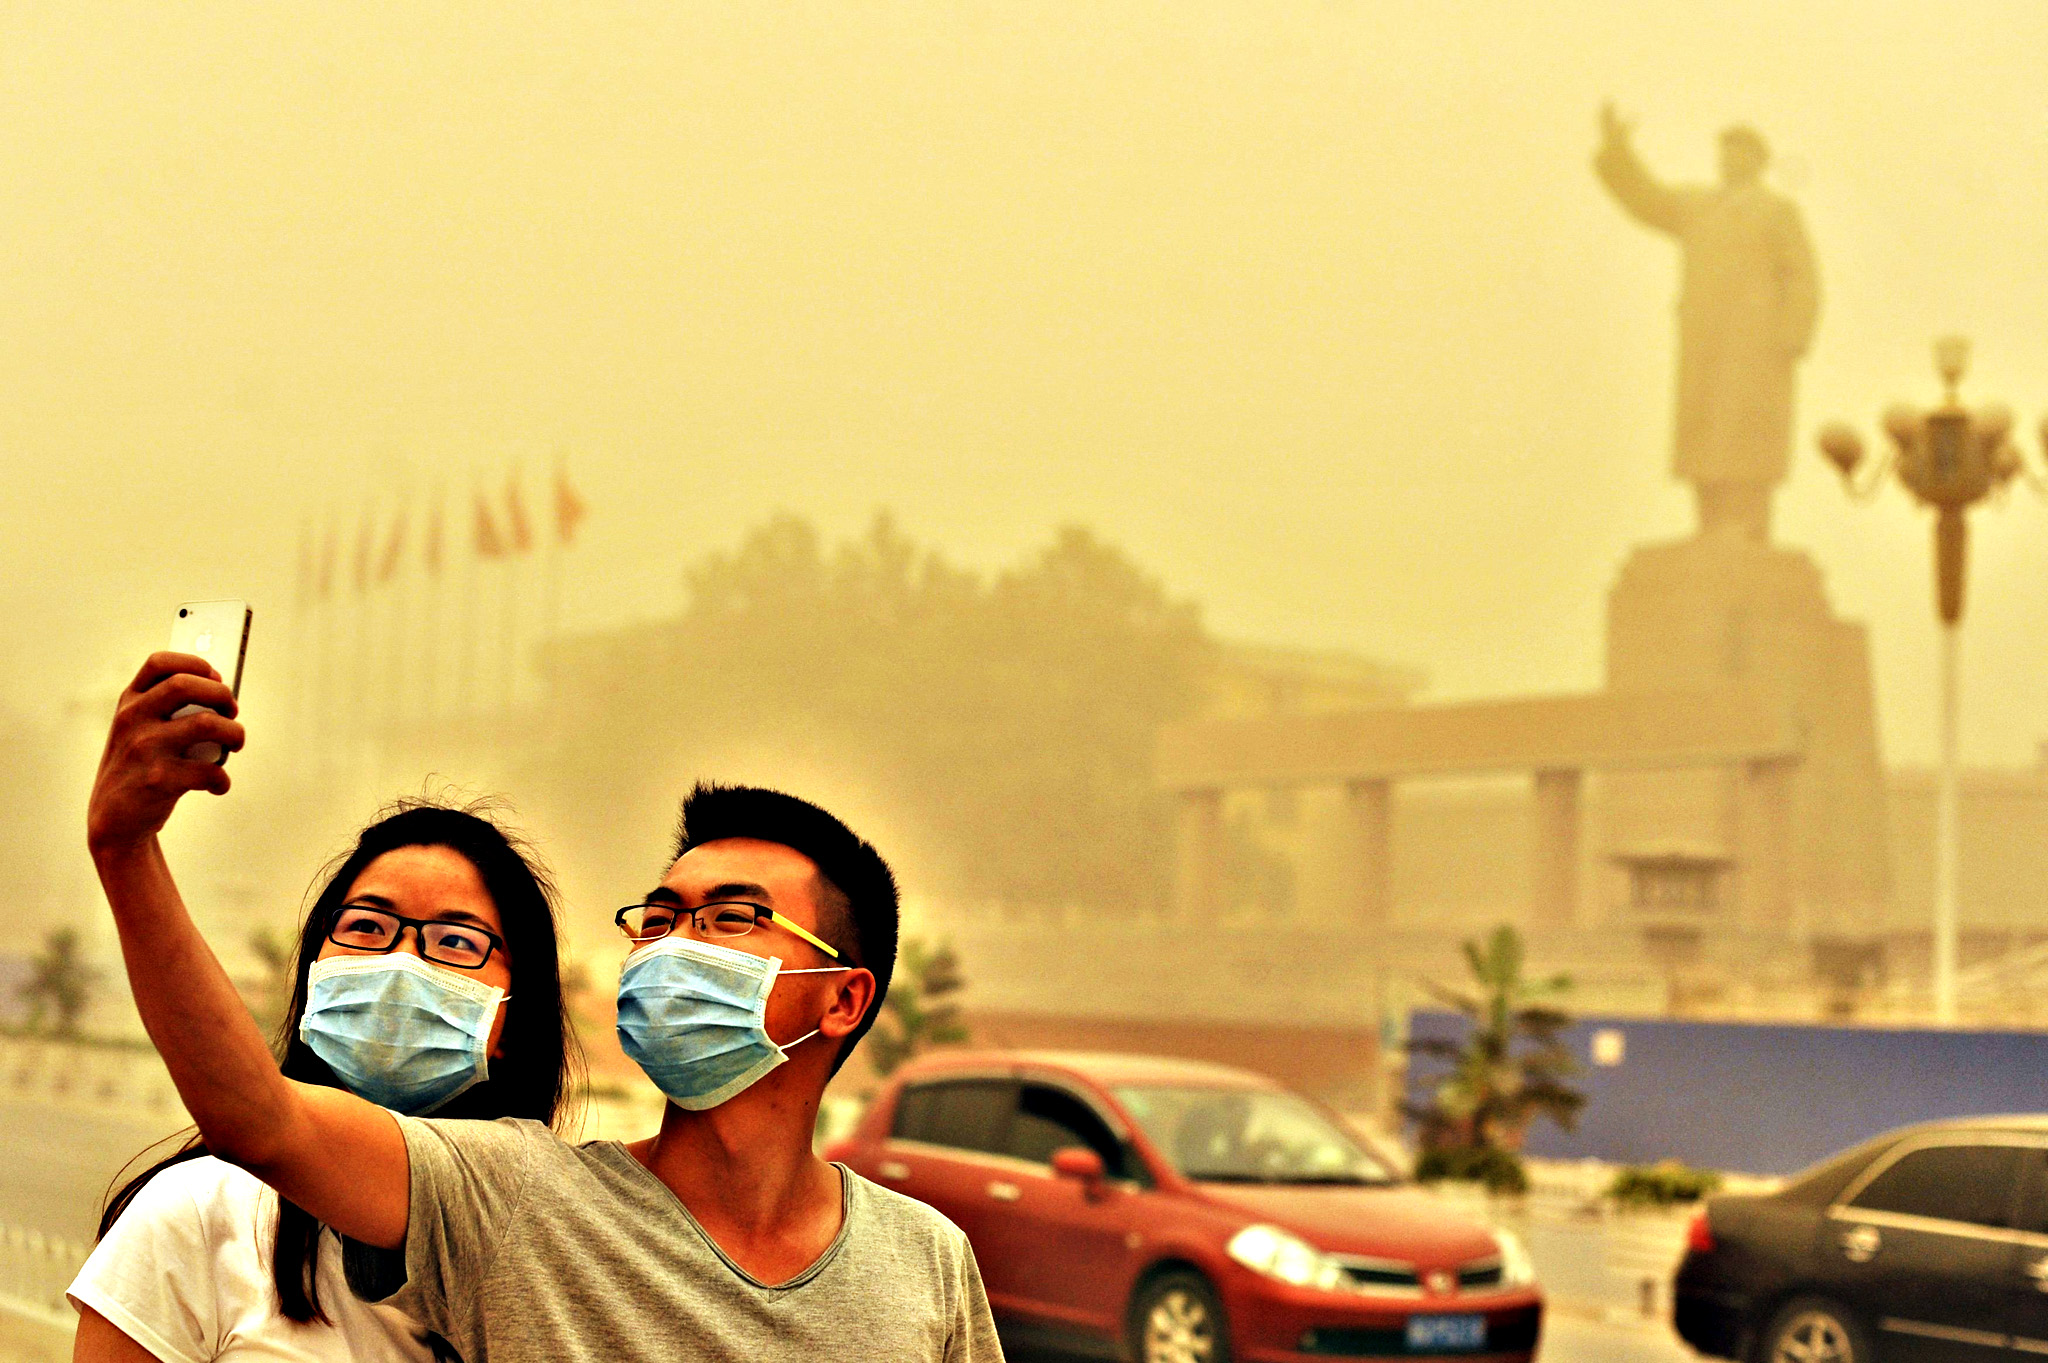 Residents wearing masks pose for a photograph near a statue of late Chinese Chairman Mao Zedong, as a sandstorm hits Kashgar, Xinjiang Uighur Autonomous Region, China